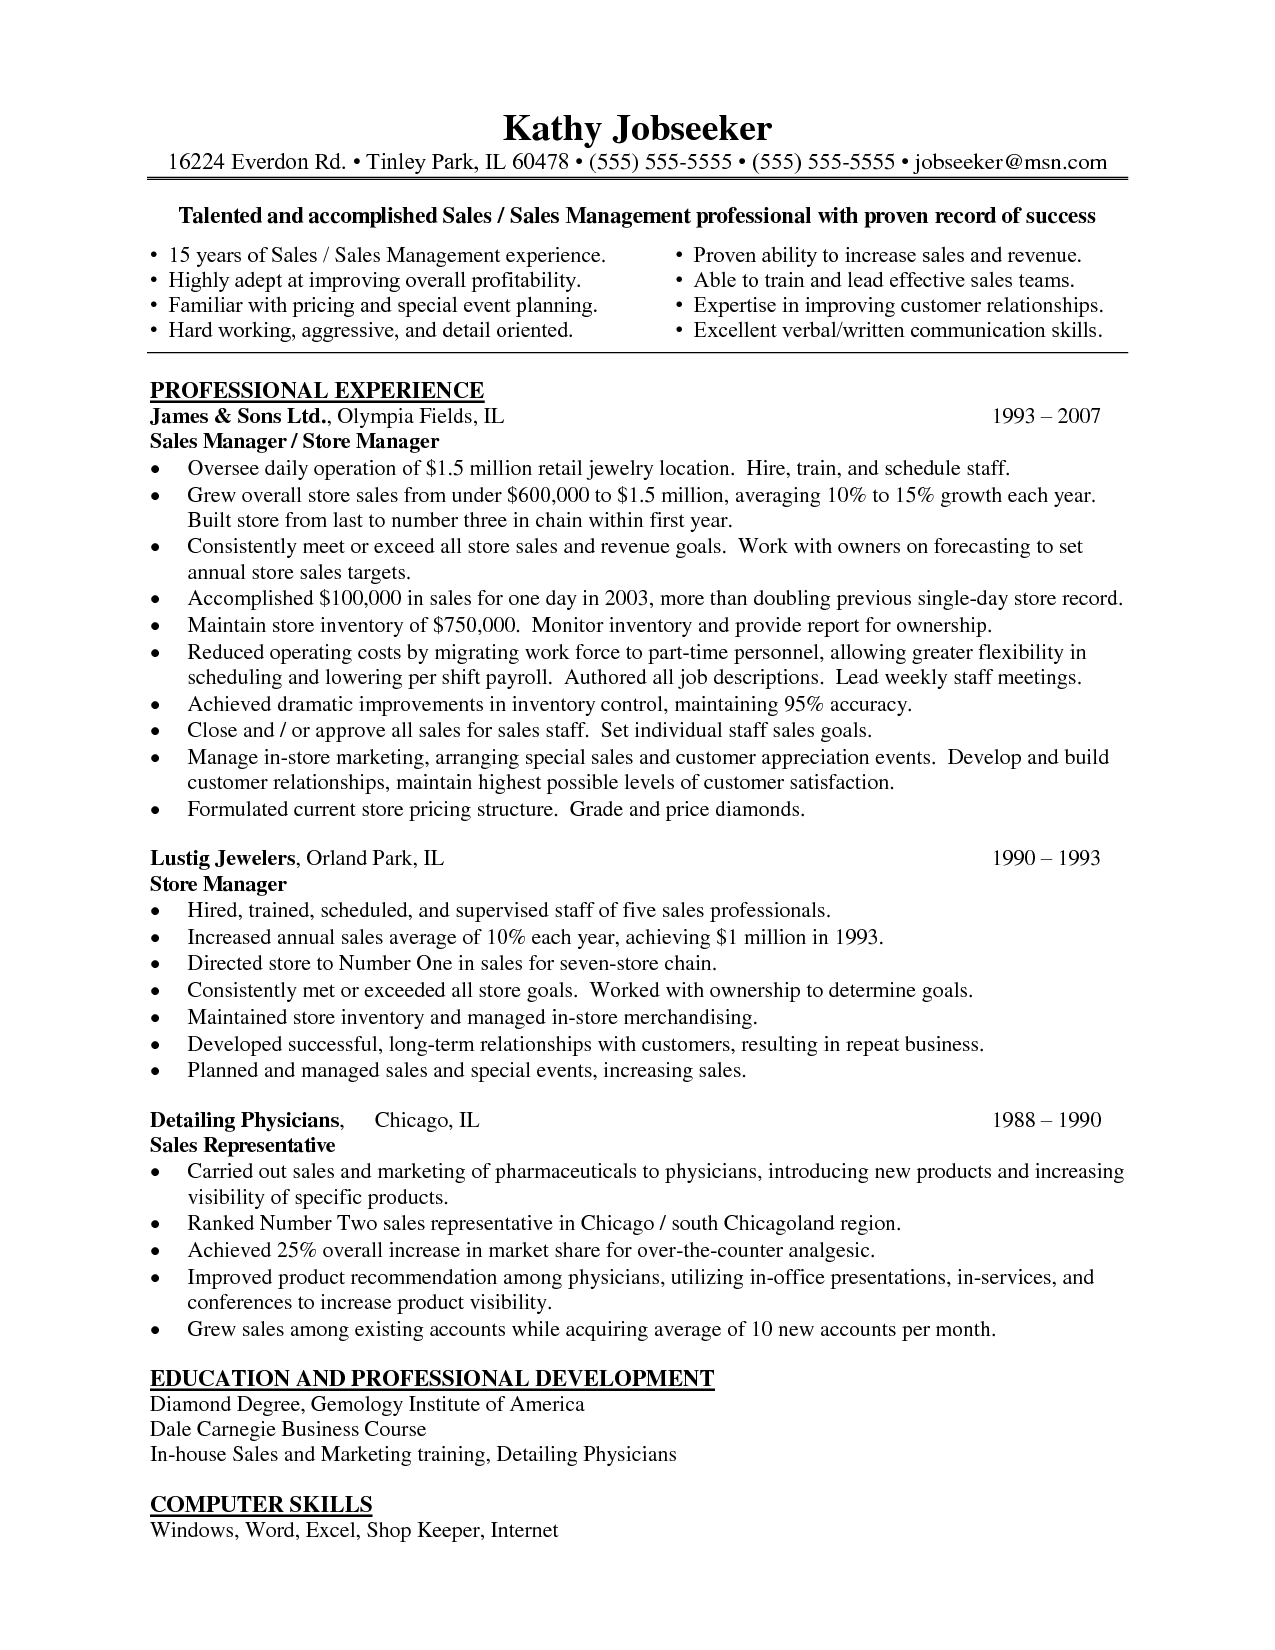 resume examples for retail store manager sample cover letter for retail management job 4